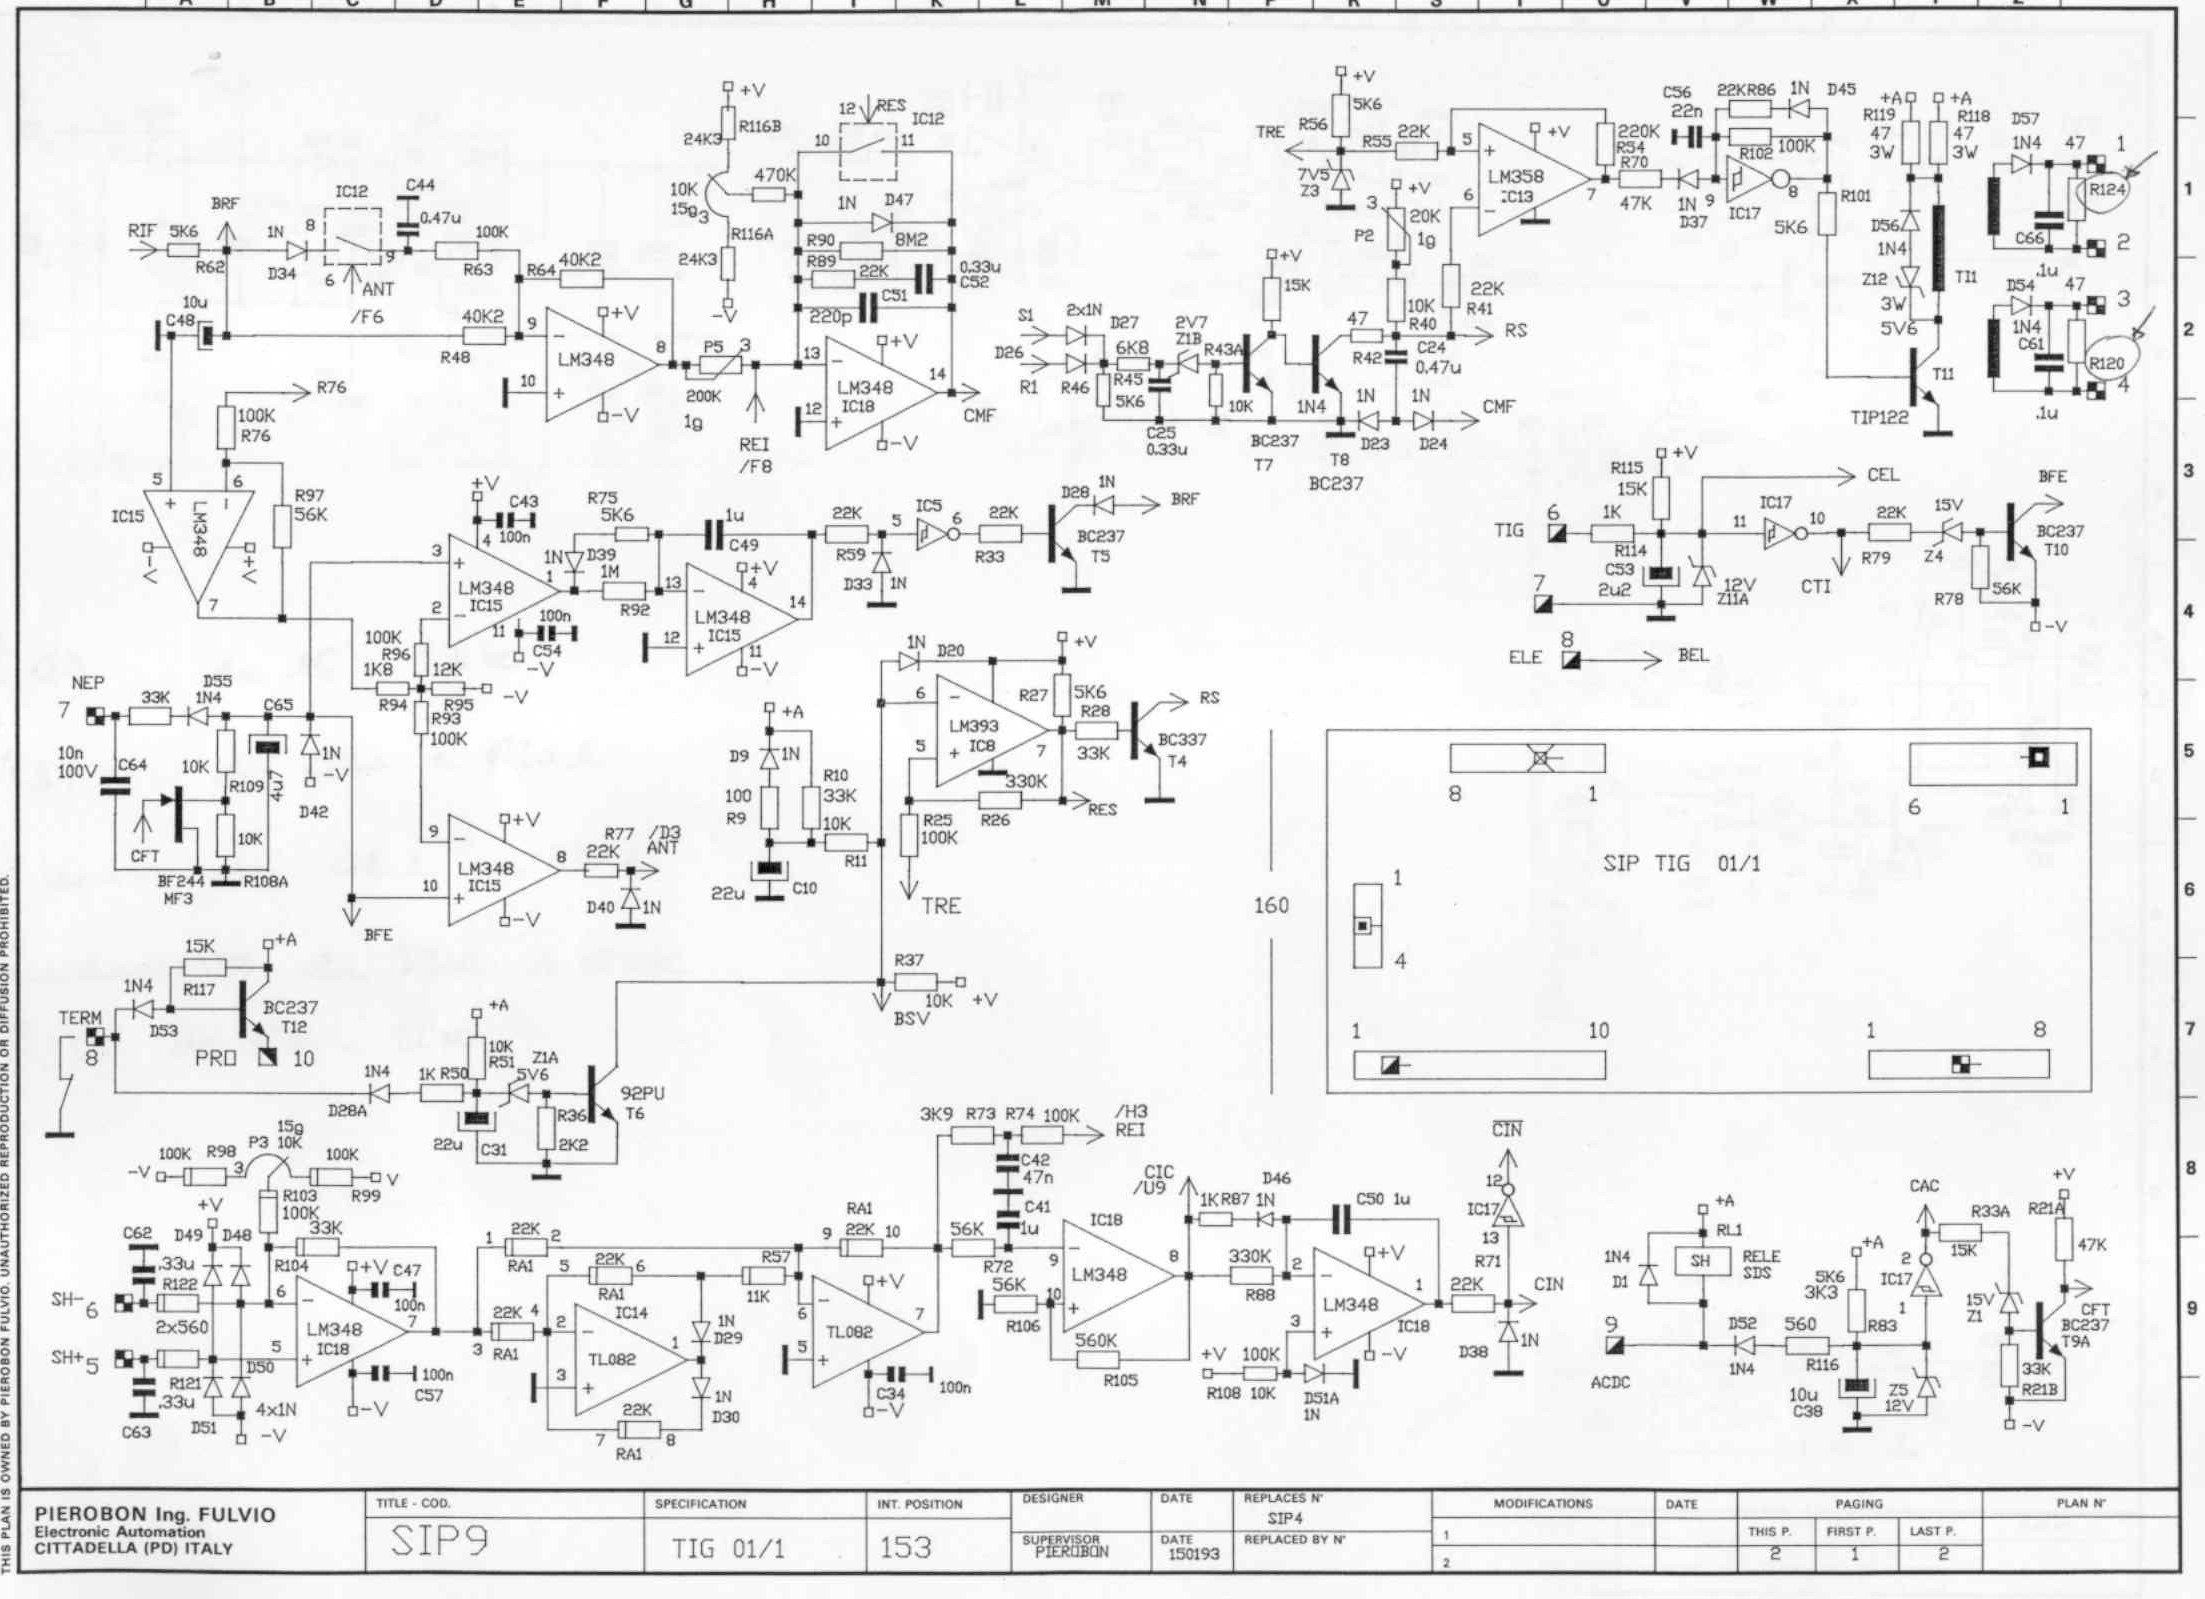 Mig Welder Wiring Diagram on arc welder wiring diagram, mig welder switch, hobart welder wiring diagram, mig welder cover, mig welder wire, mig welder valves, dc welder wiring diagram, mig welder capacitor, mig welder motor, mig welder fuse diagram, mig welder regulator, 220 welder wiring diagram, miller welder wiring diagram, mig welder cable, mig 100 welder schematic diagram, mig welder parts, capacitive discharge welder wiring diagram, tig welder wiring diagram, mig welder assembly, chicago electric welder wiring diagram,